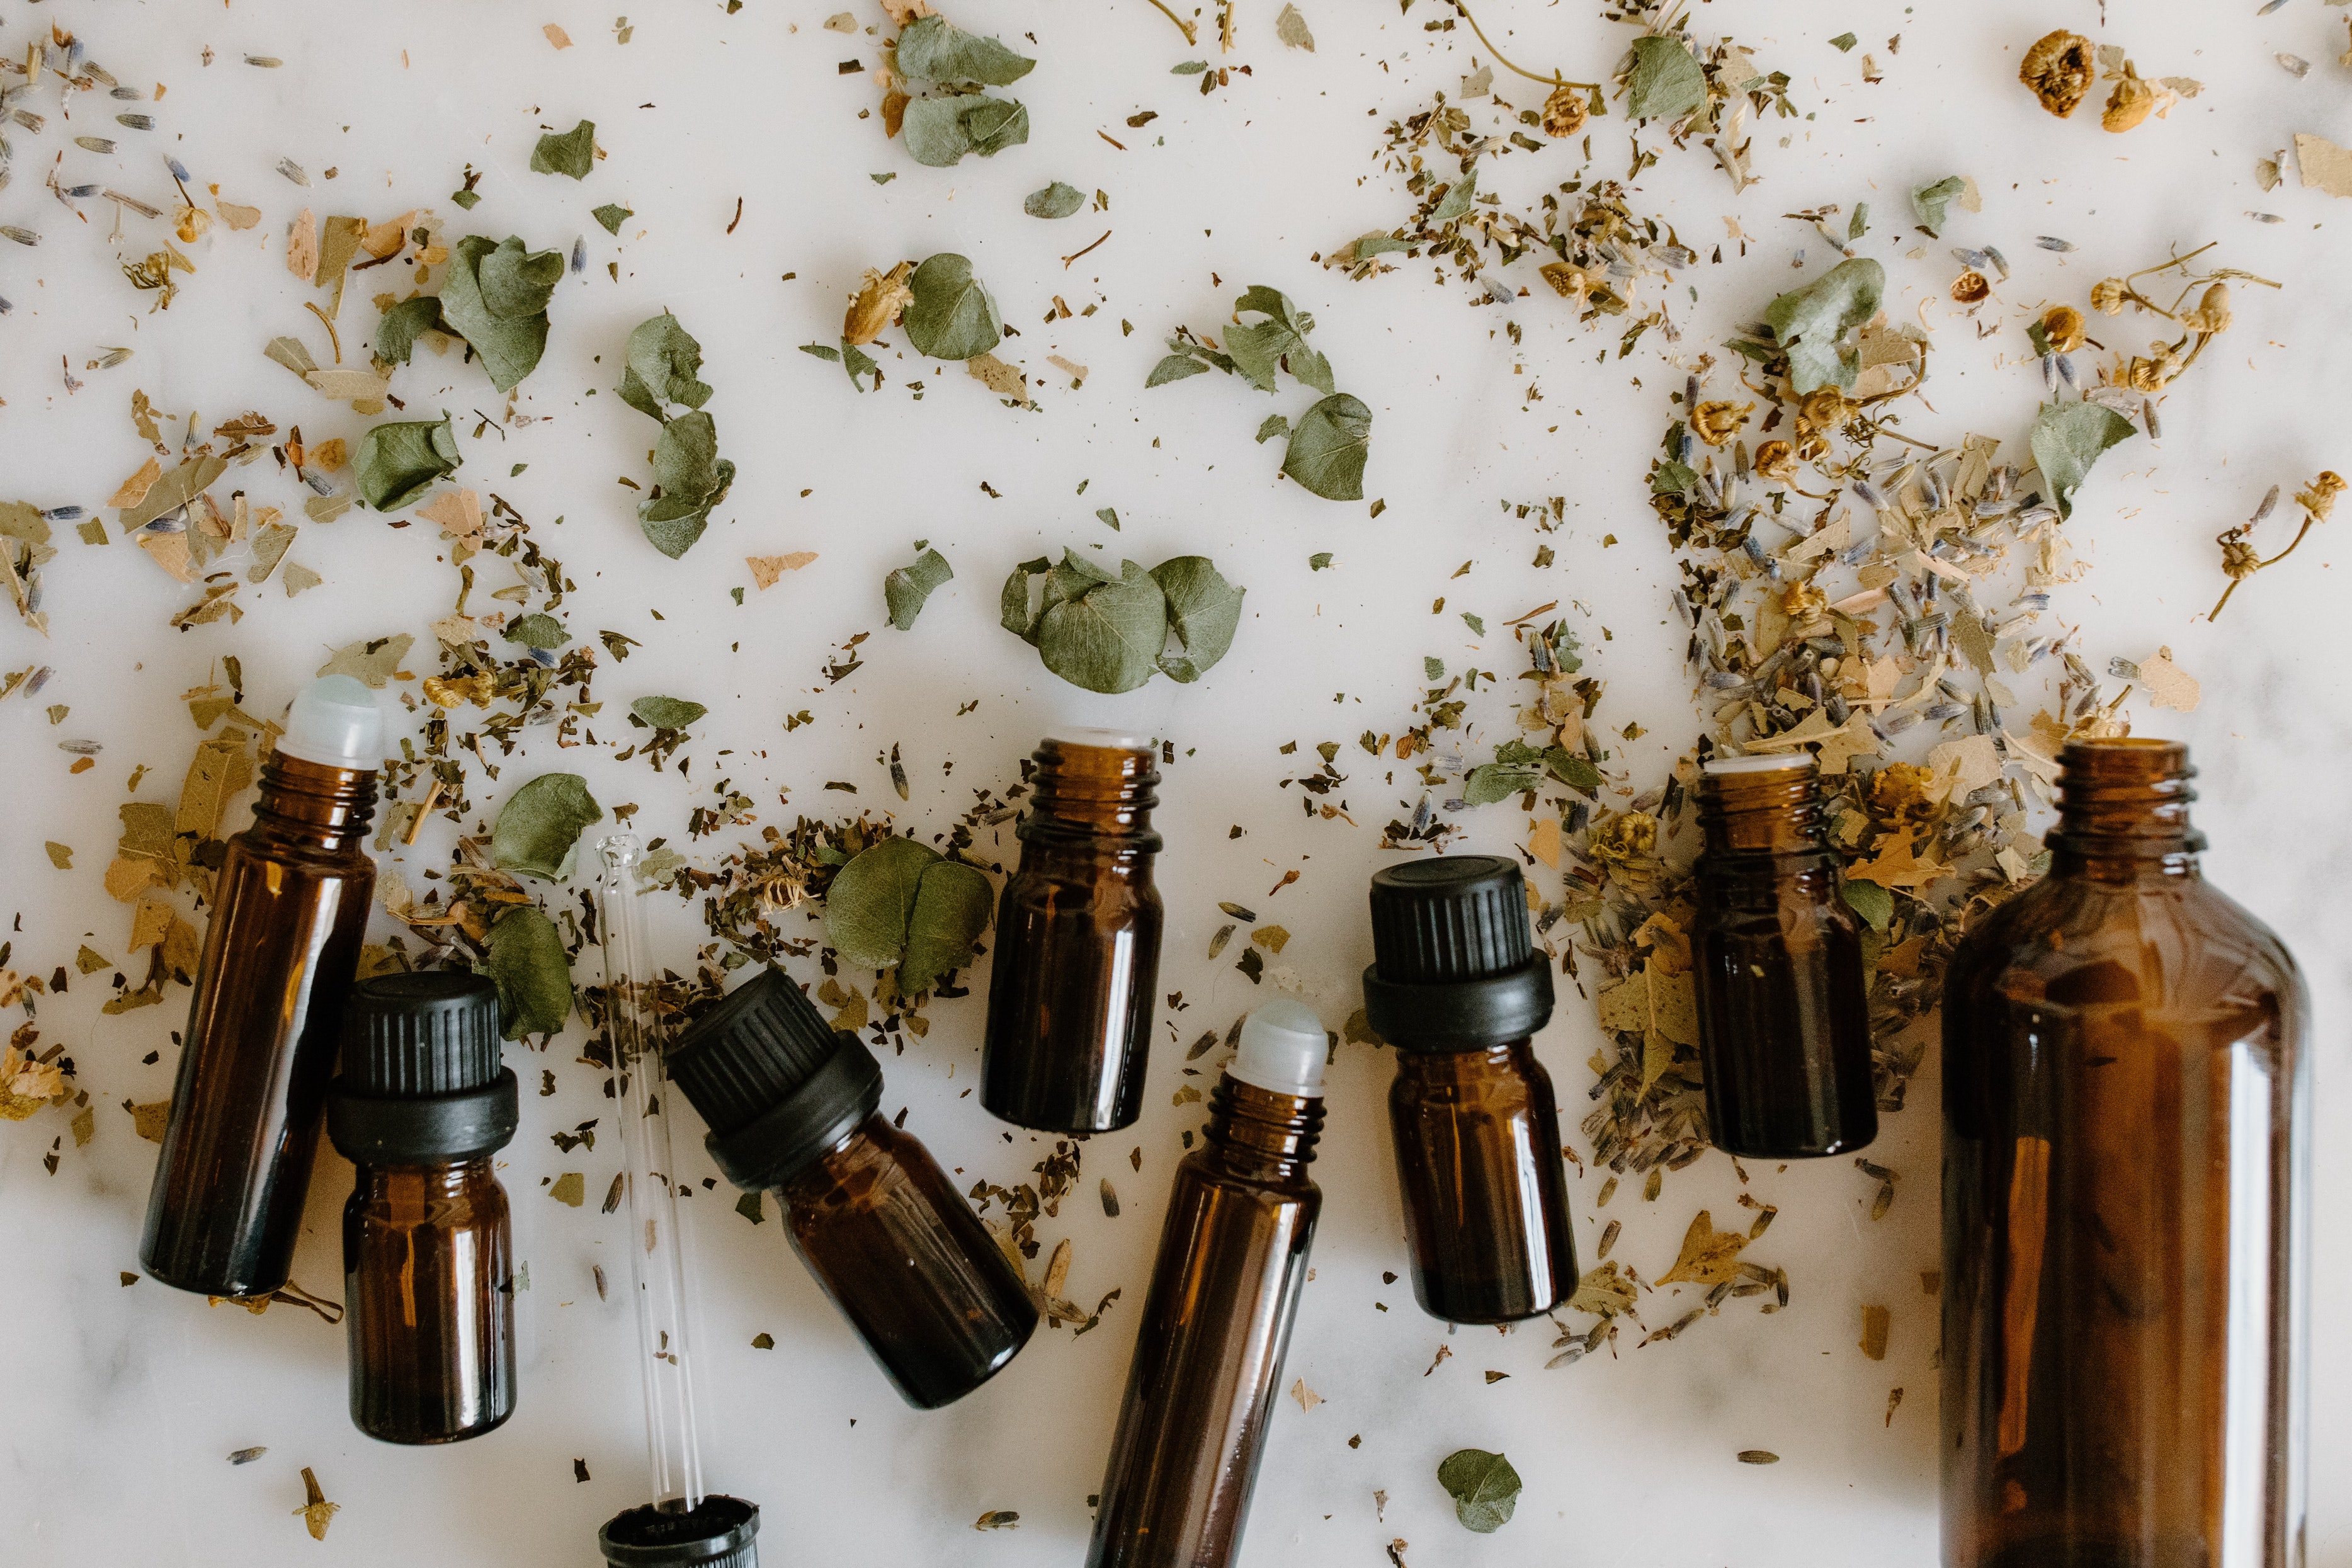 Secret Beauty Club What Are the Best Natural Oils to Use on My Face?